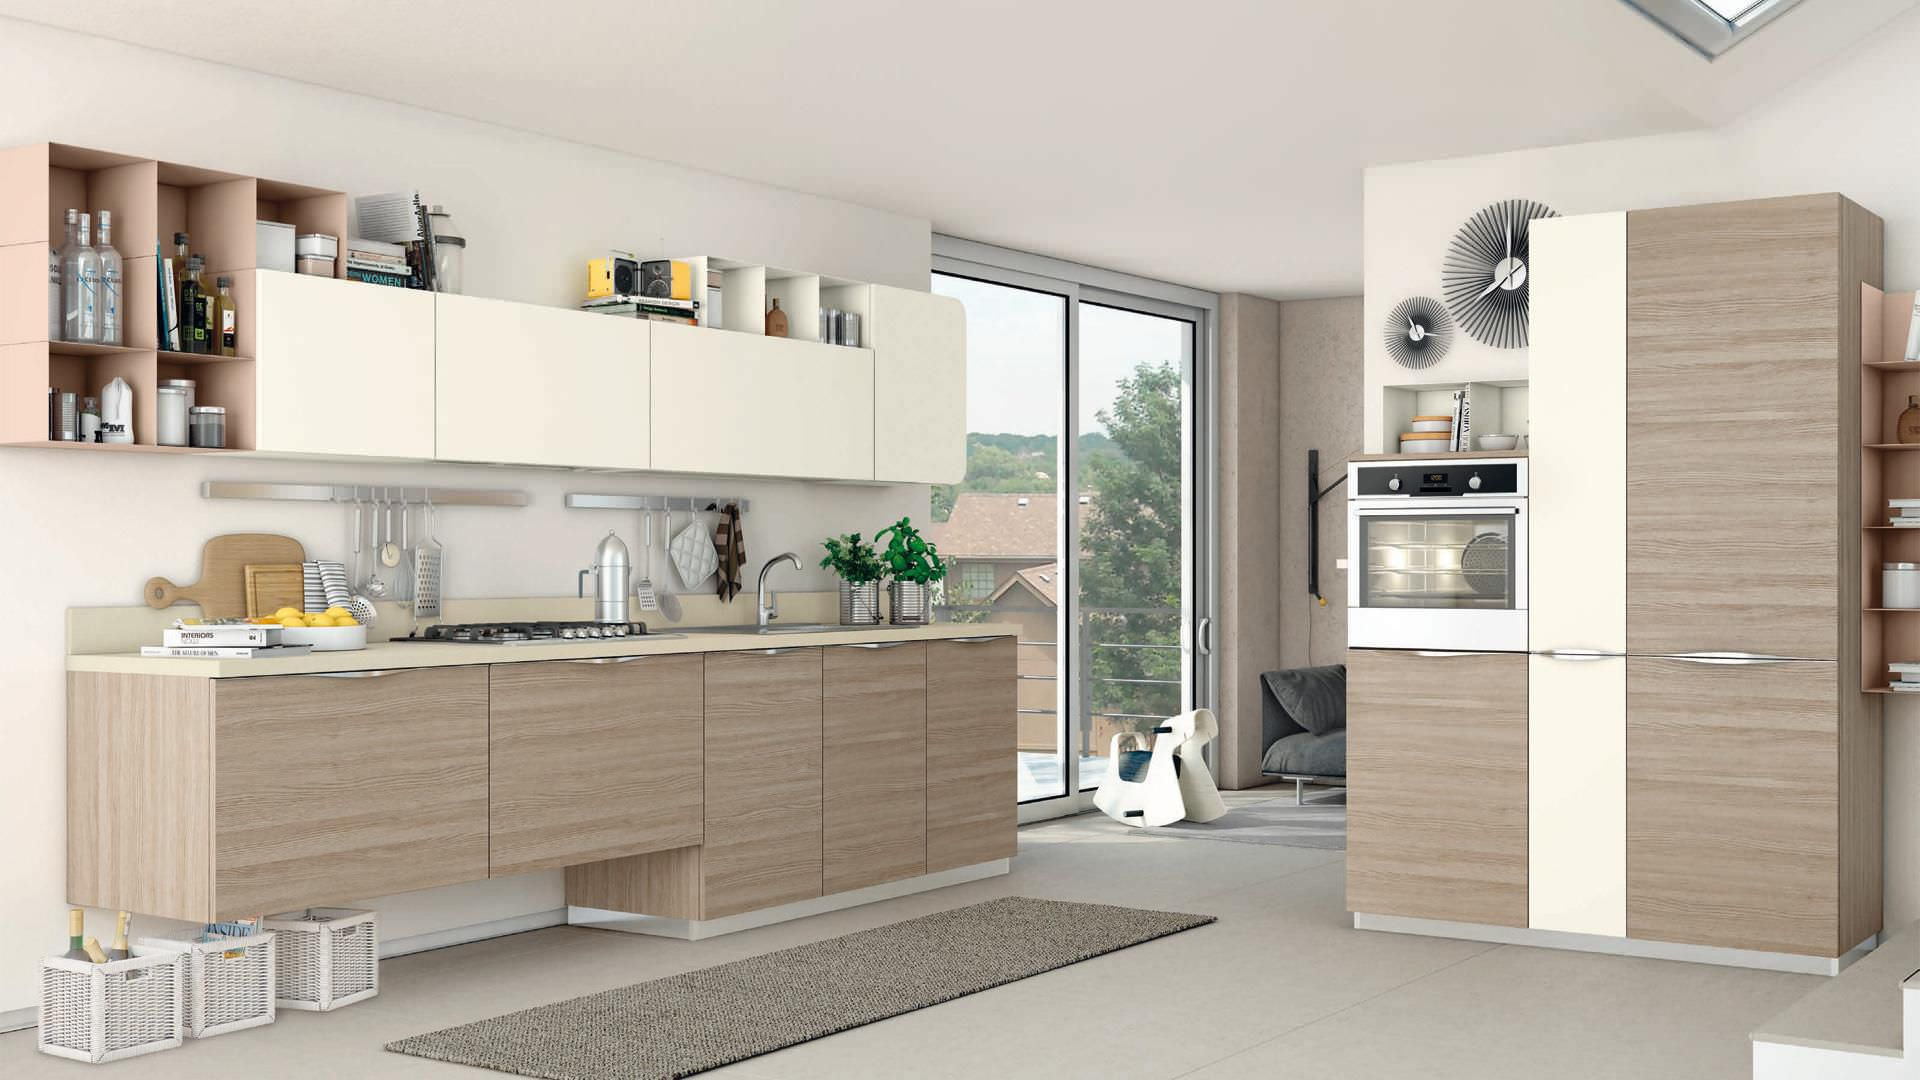 Cucine Lube Design Contemporary Kitchen Wood Veneer Lacquered With Handles Immagina Cucine Lube